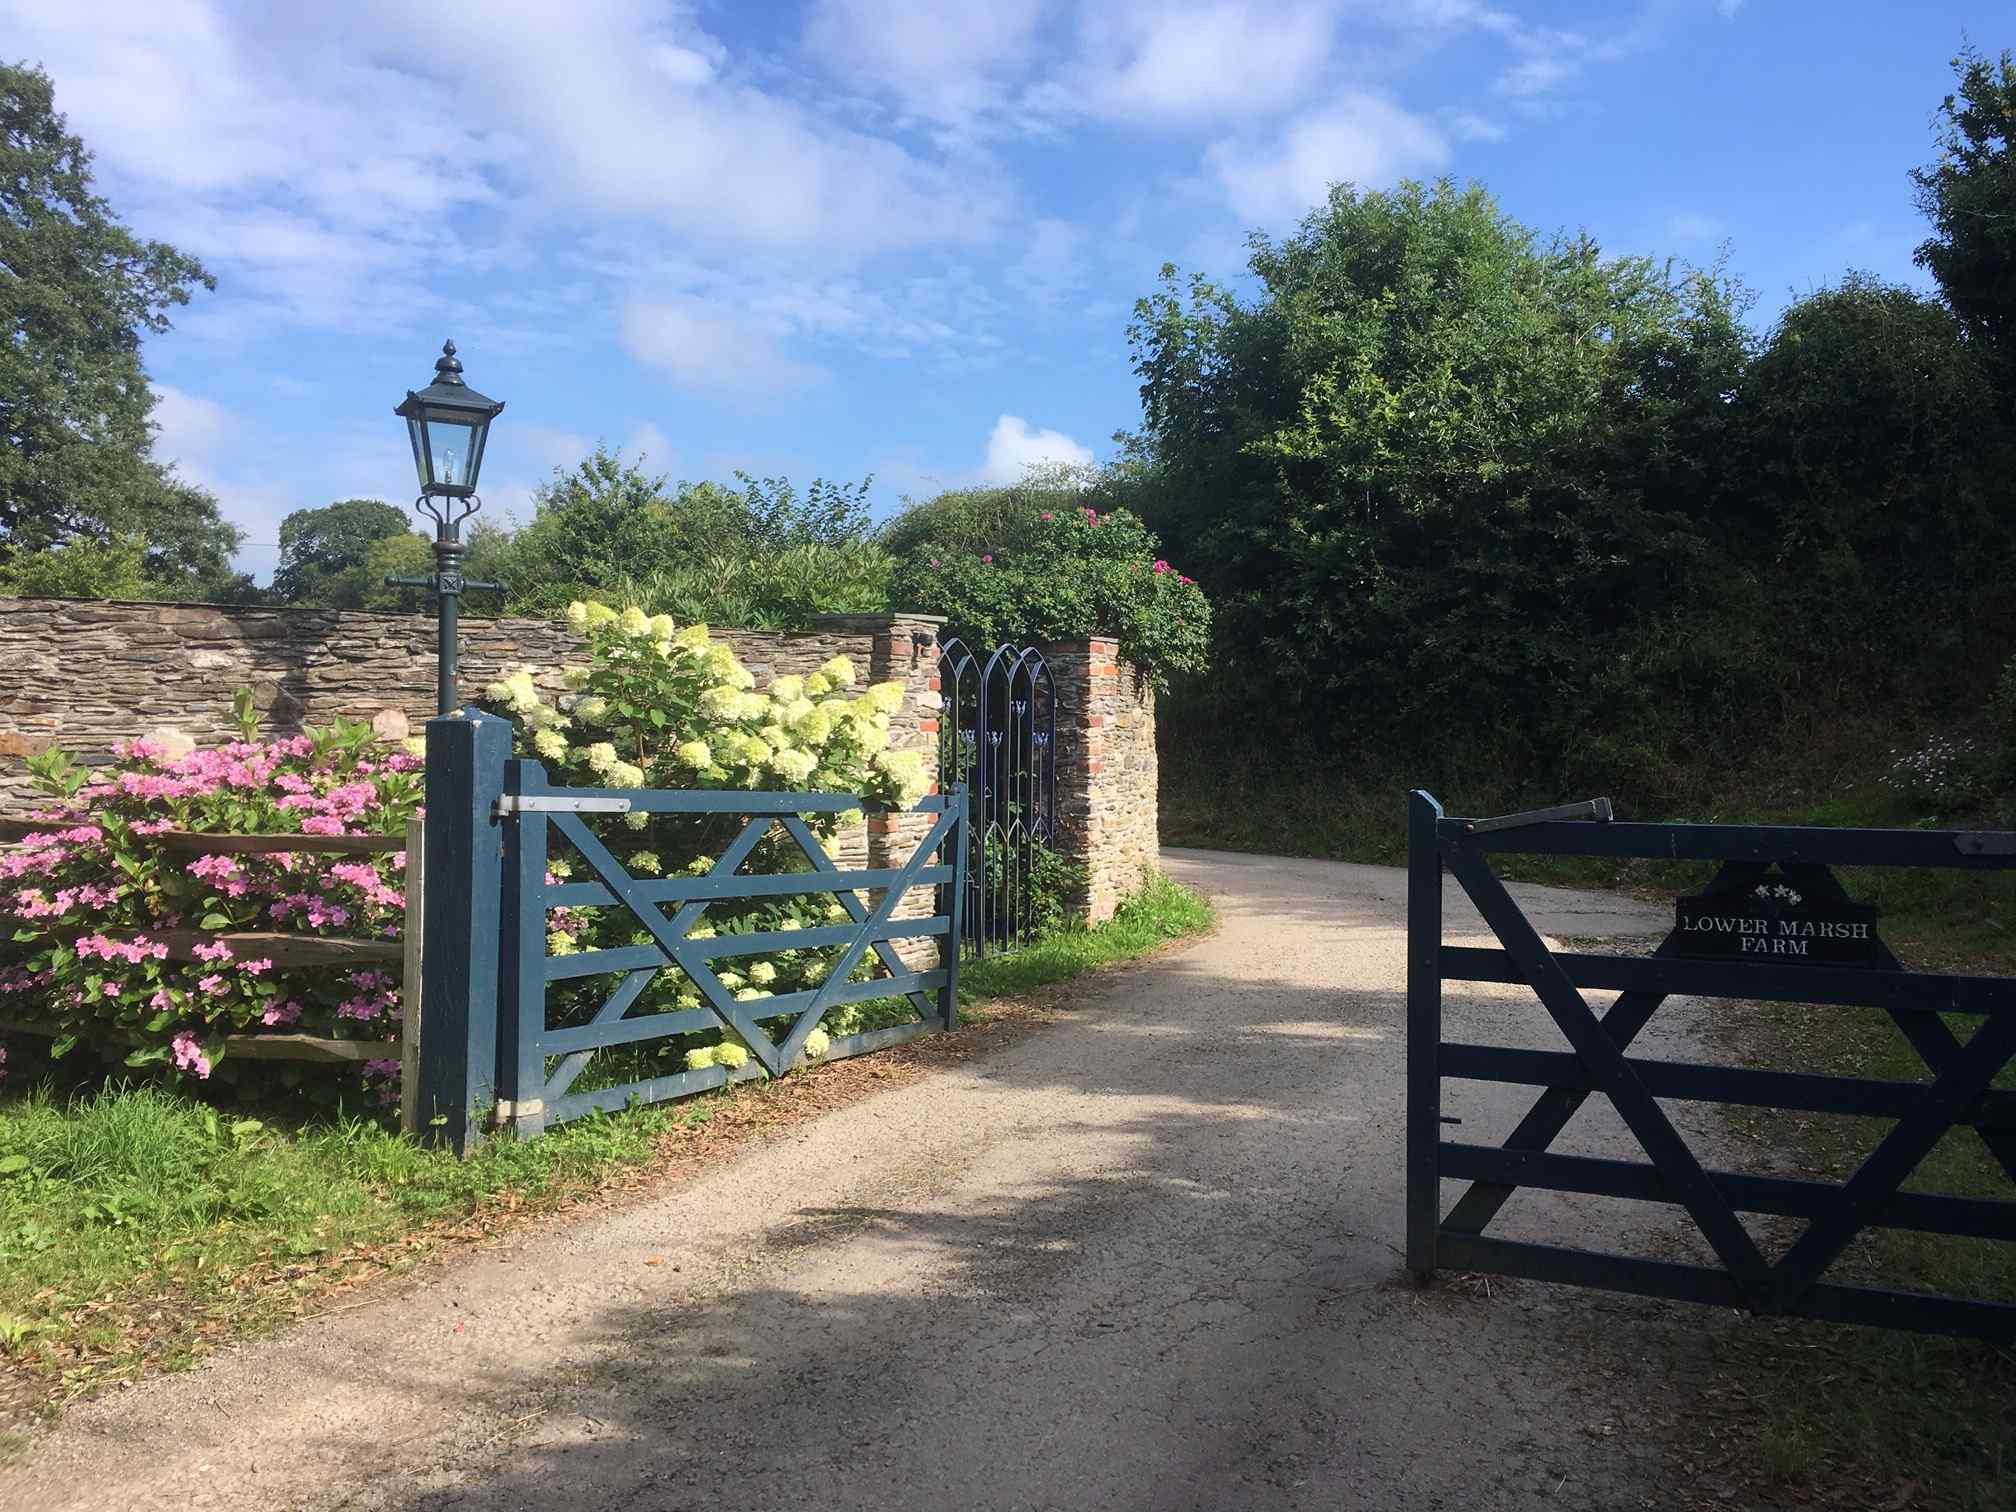 Entrance to Lower Marsh Farm